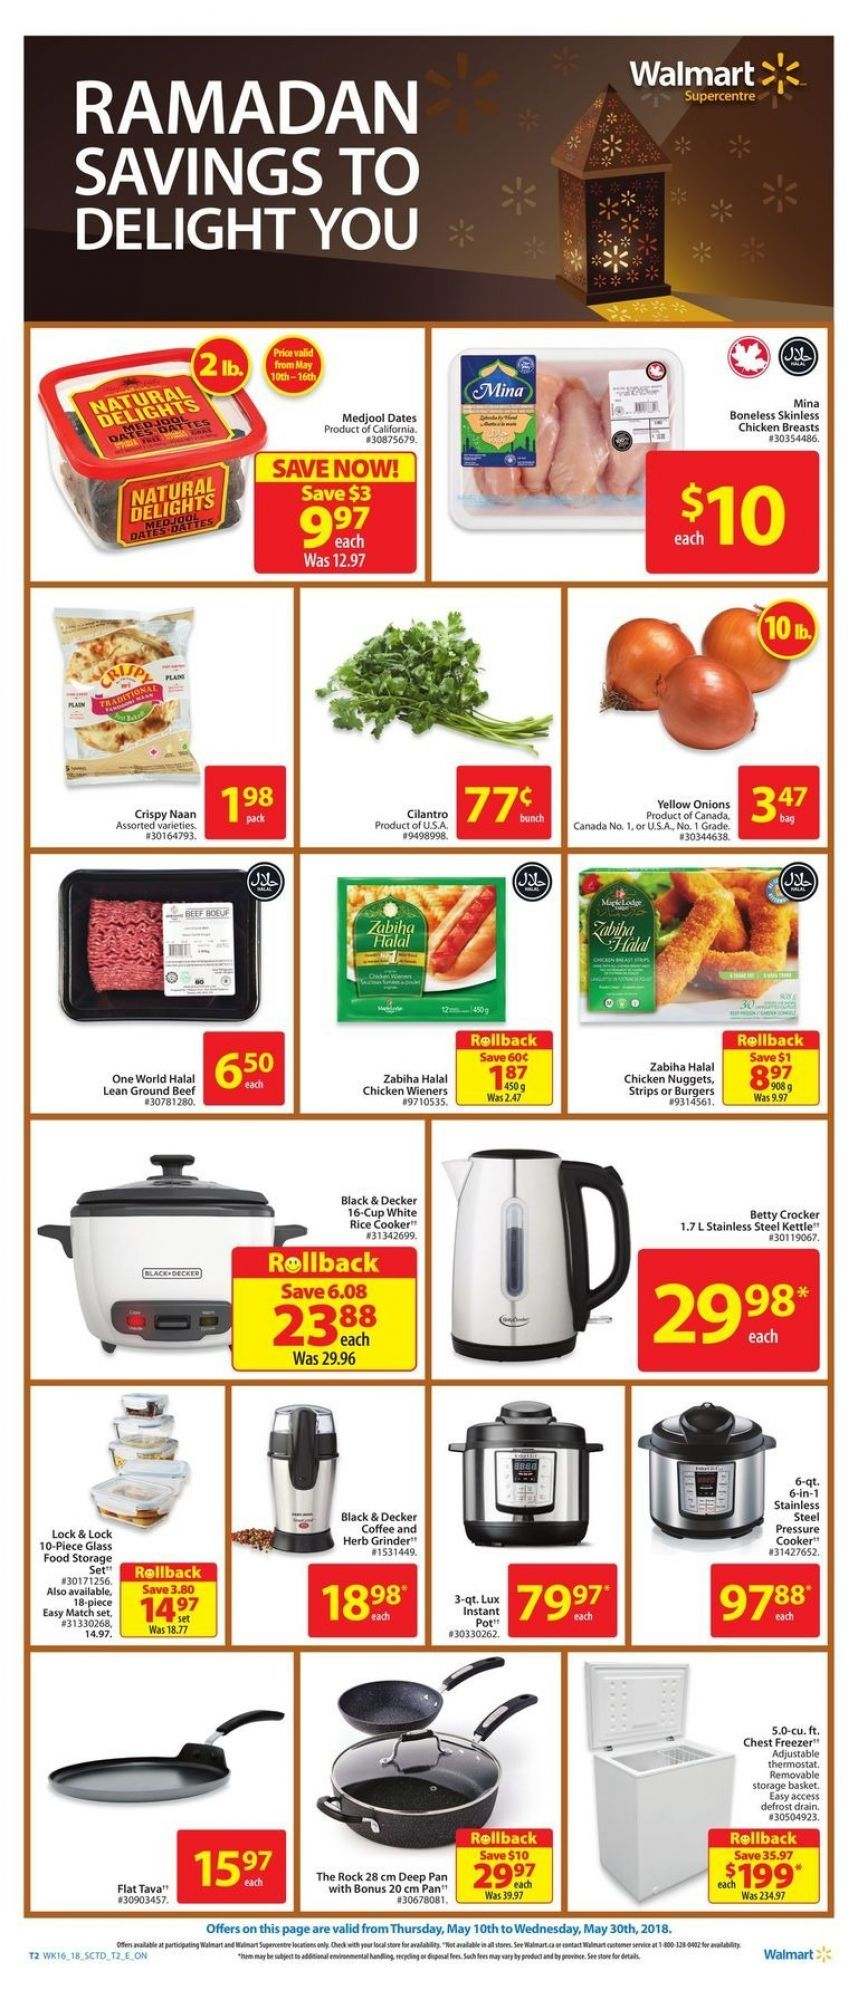 Flyer Walmart Ramadan Savings On Canada From Thursday May 10 2018 To Wednesday May 30 2018 Flyer Walmart 10 Things